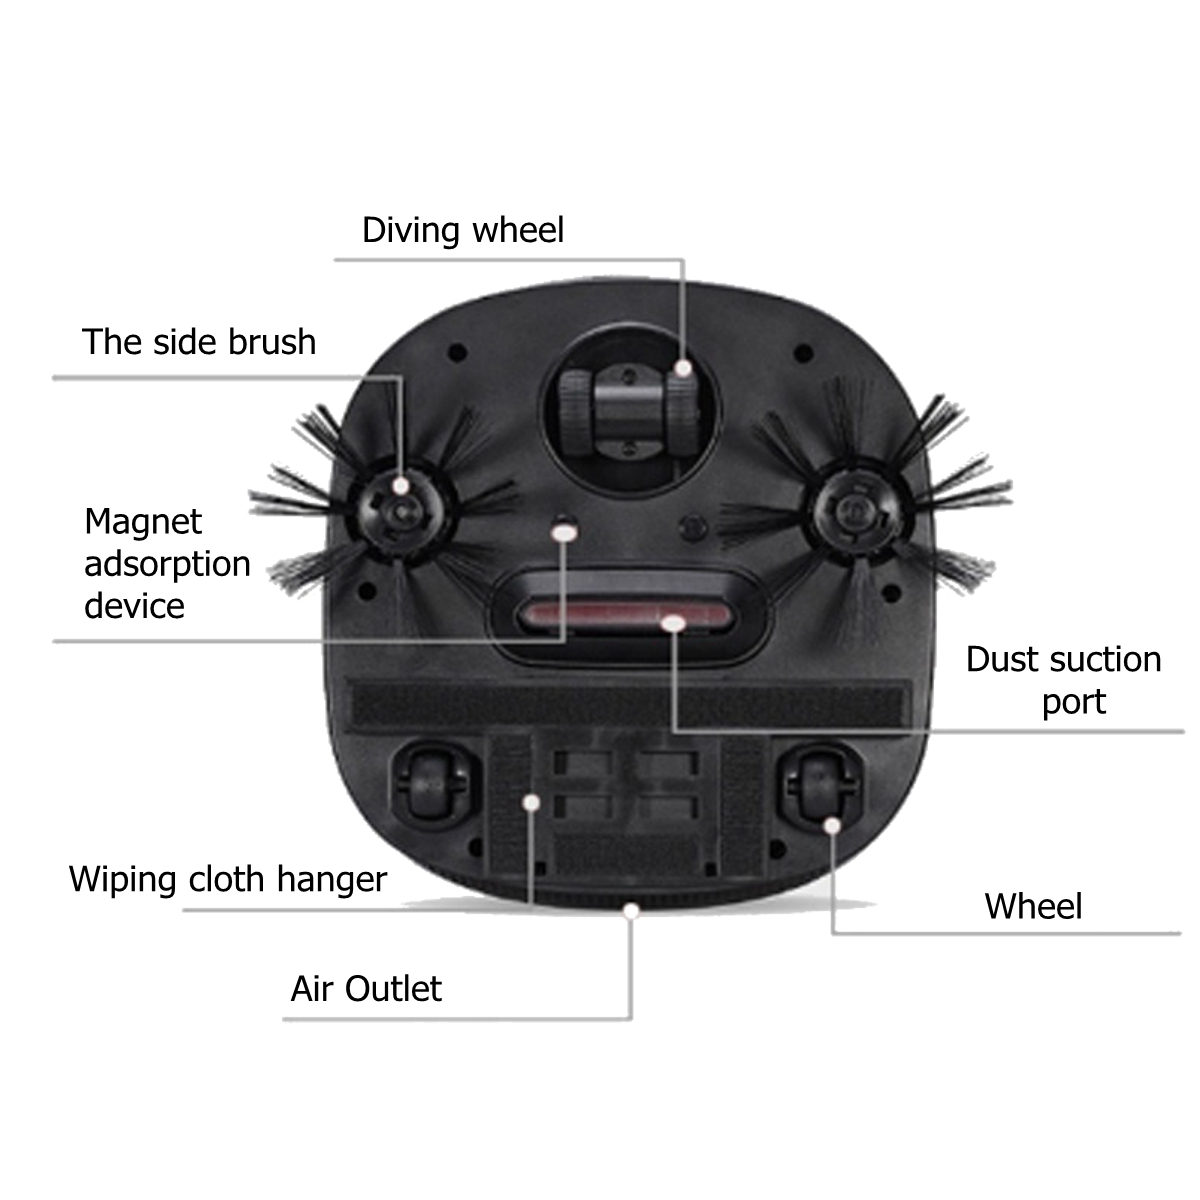 6 in 1 Rechargeable Robot Vacuum Cleaner Smart Automatic Dust Control for Household Cleaning